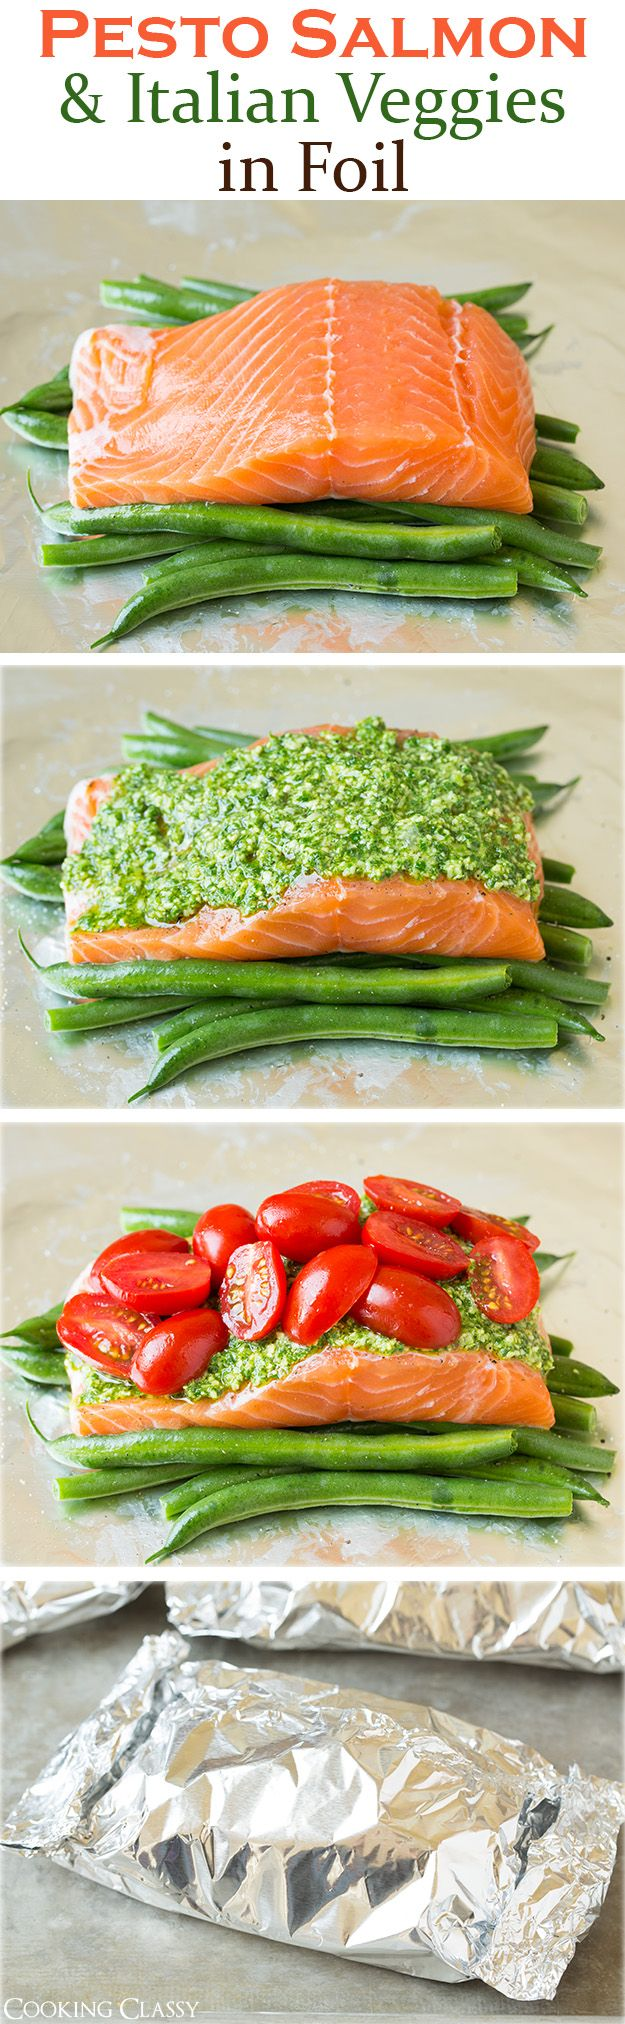 Pesto Salmon And Italian Veggies In Foil  Recipe  Pesto Salmon, Pesto And  Veggies